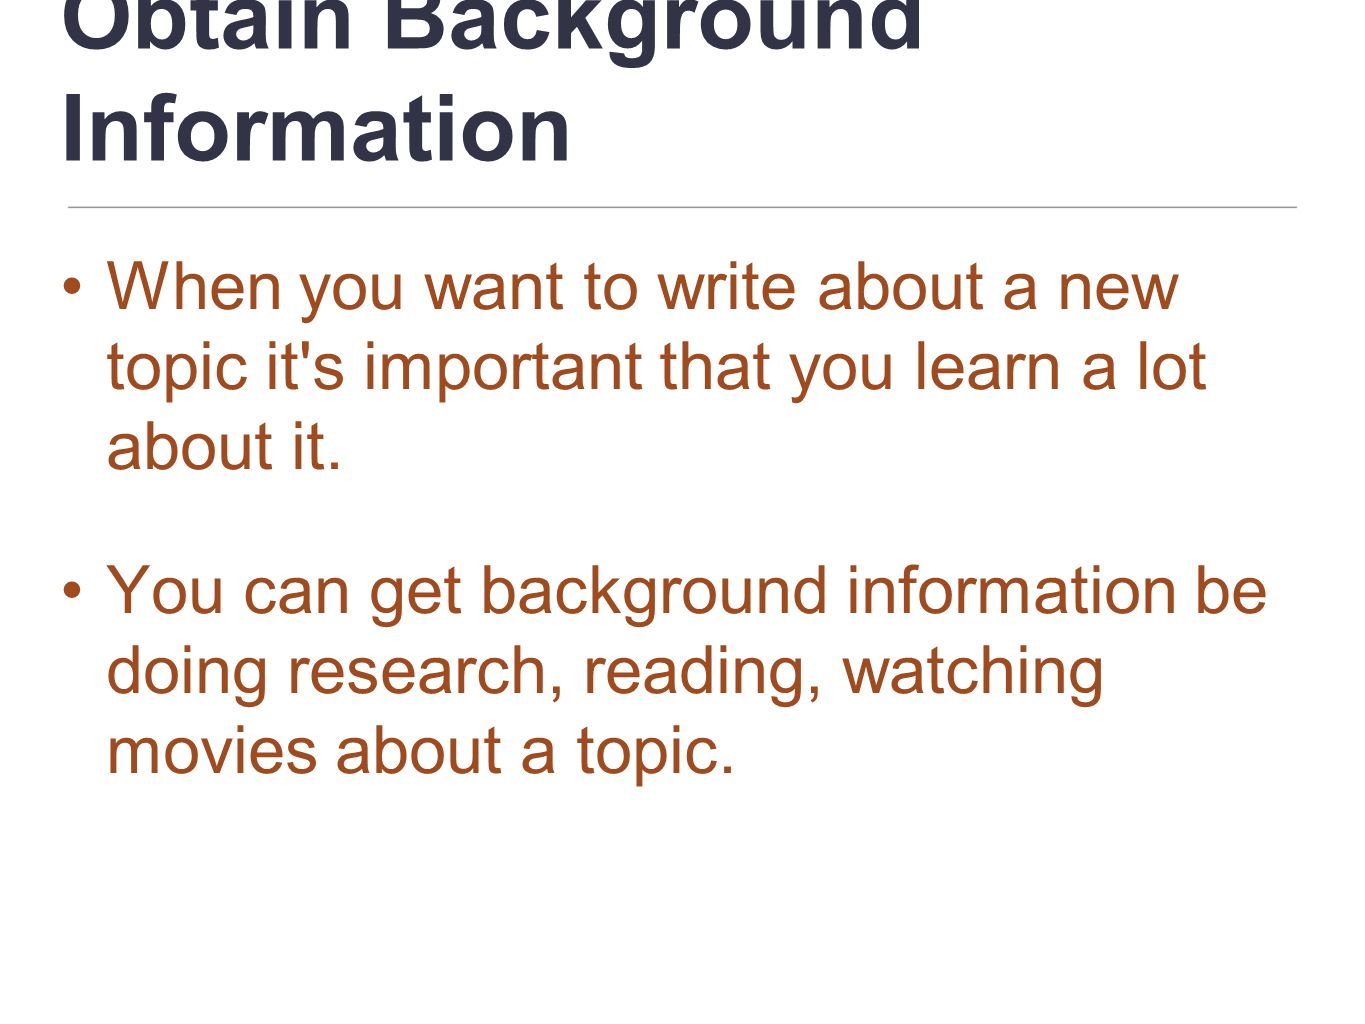 Obtain Background Information When you want to write about a new topic it's important that you learn a lot about it. You can get background informatio